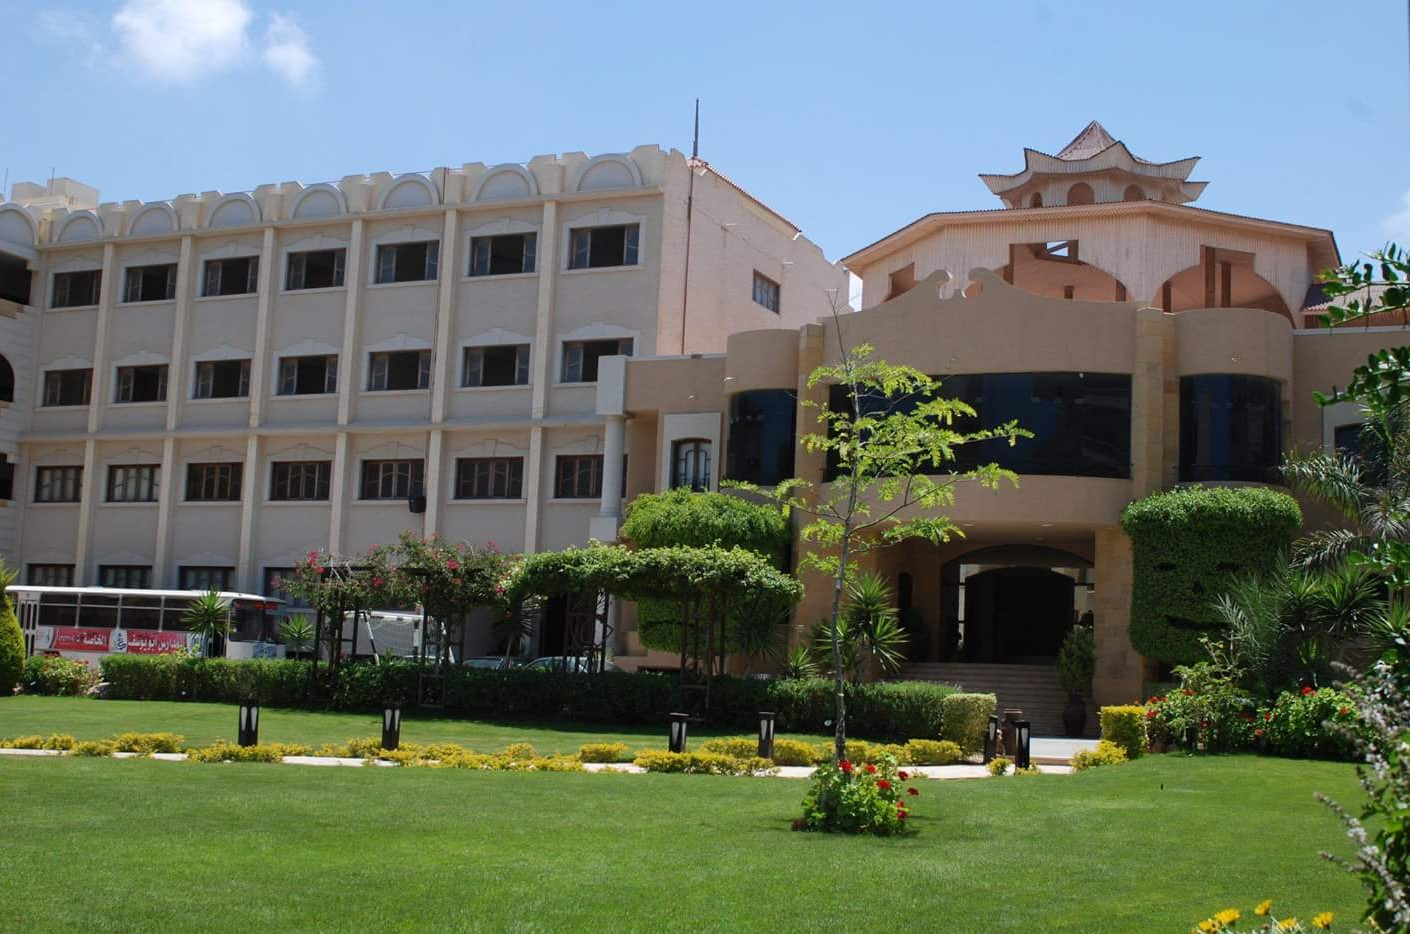 Al-Agamy Higher Institute for Administrative Sciences